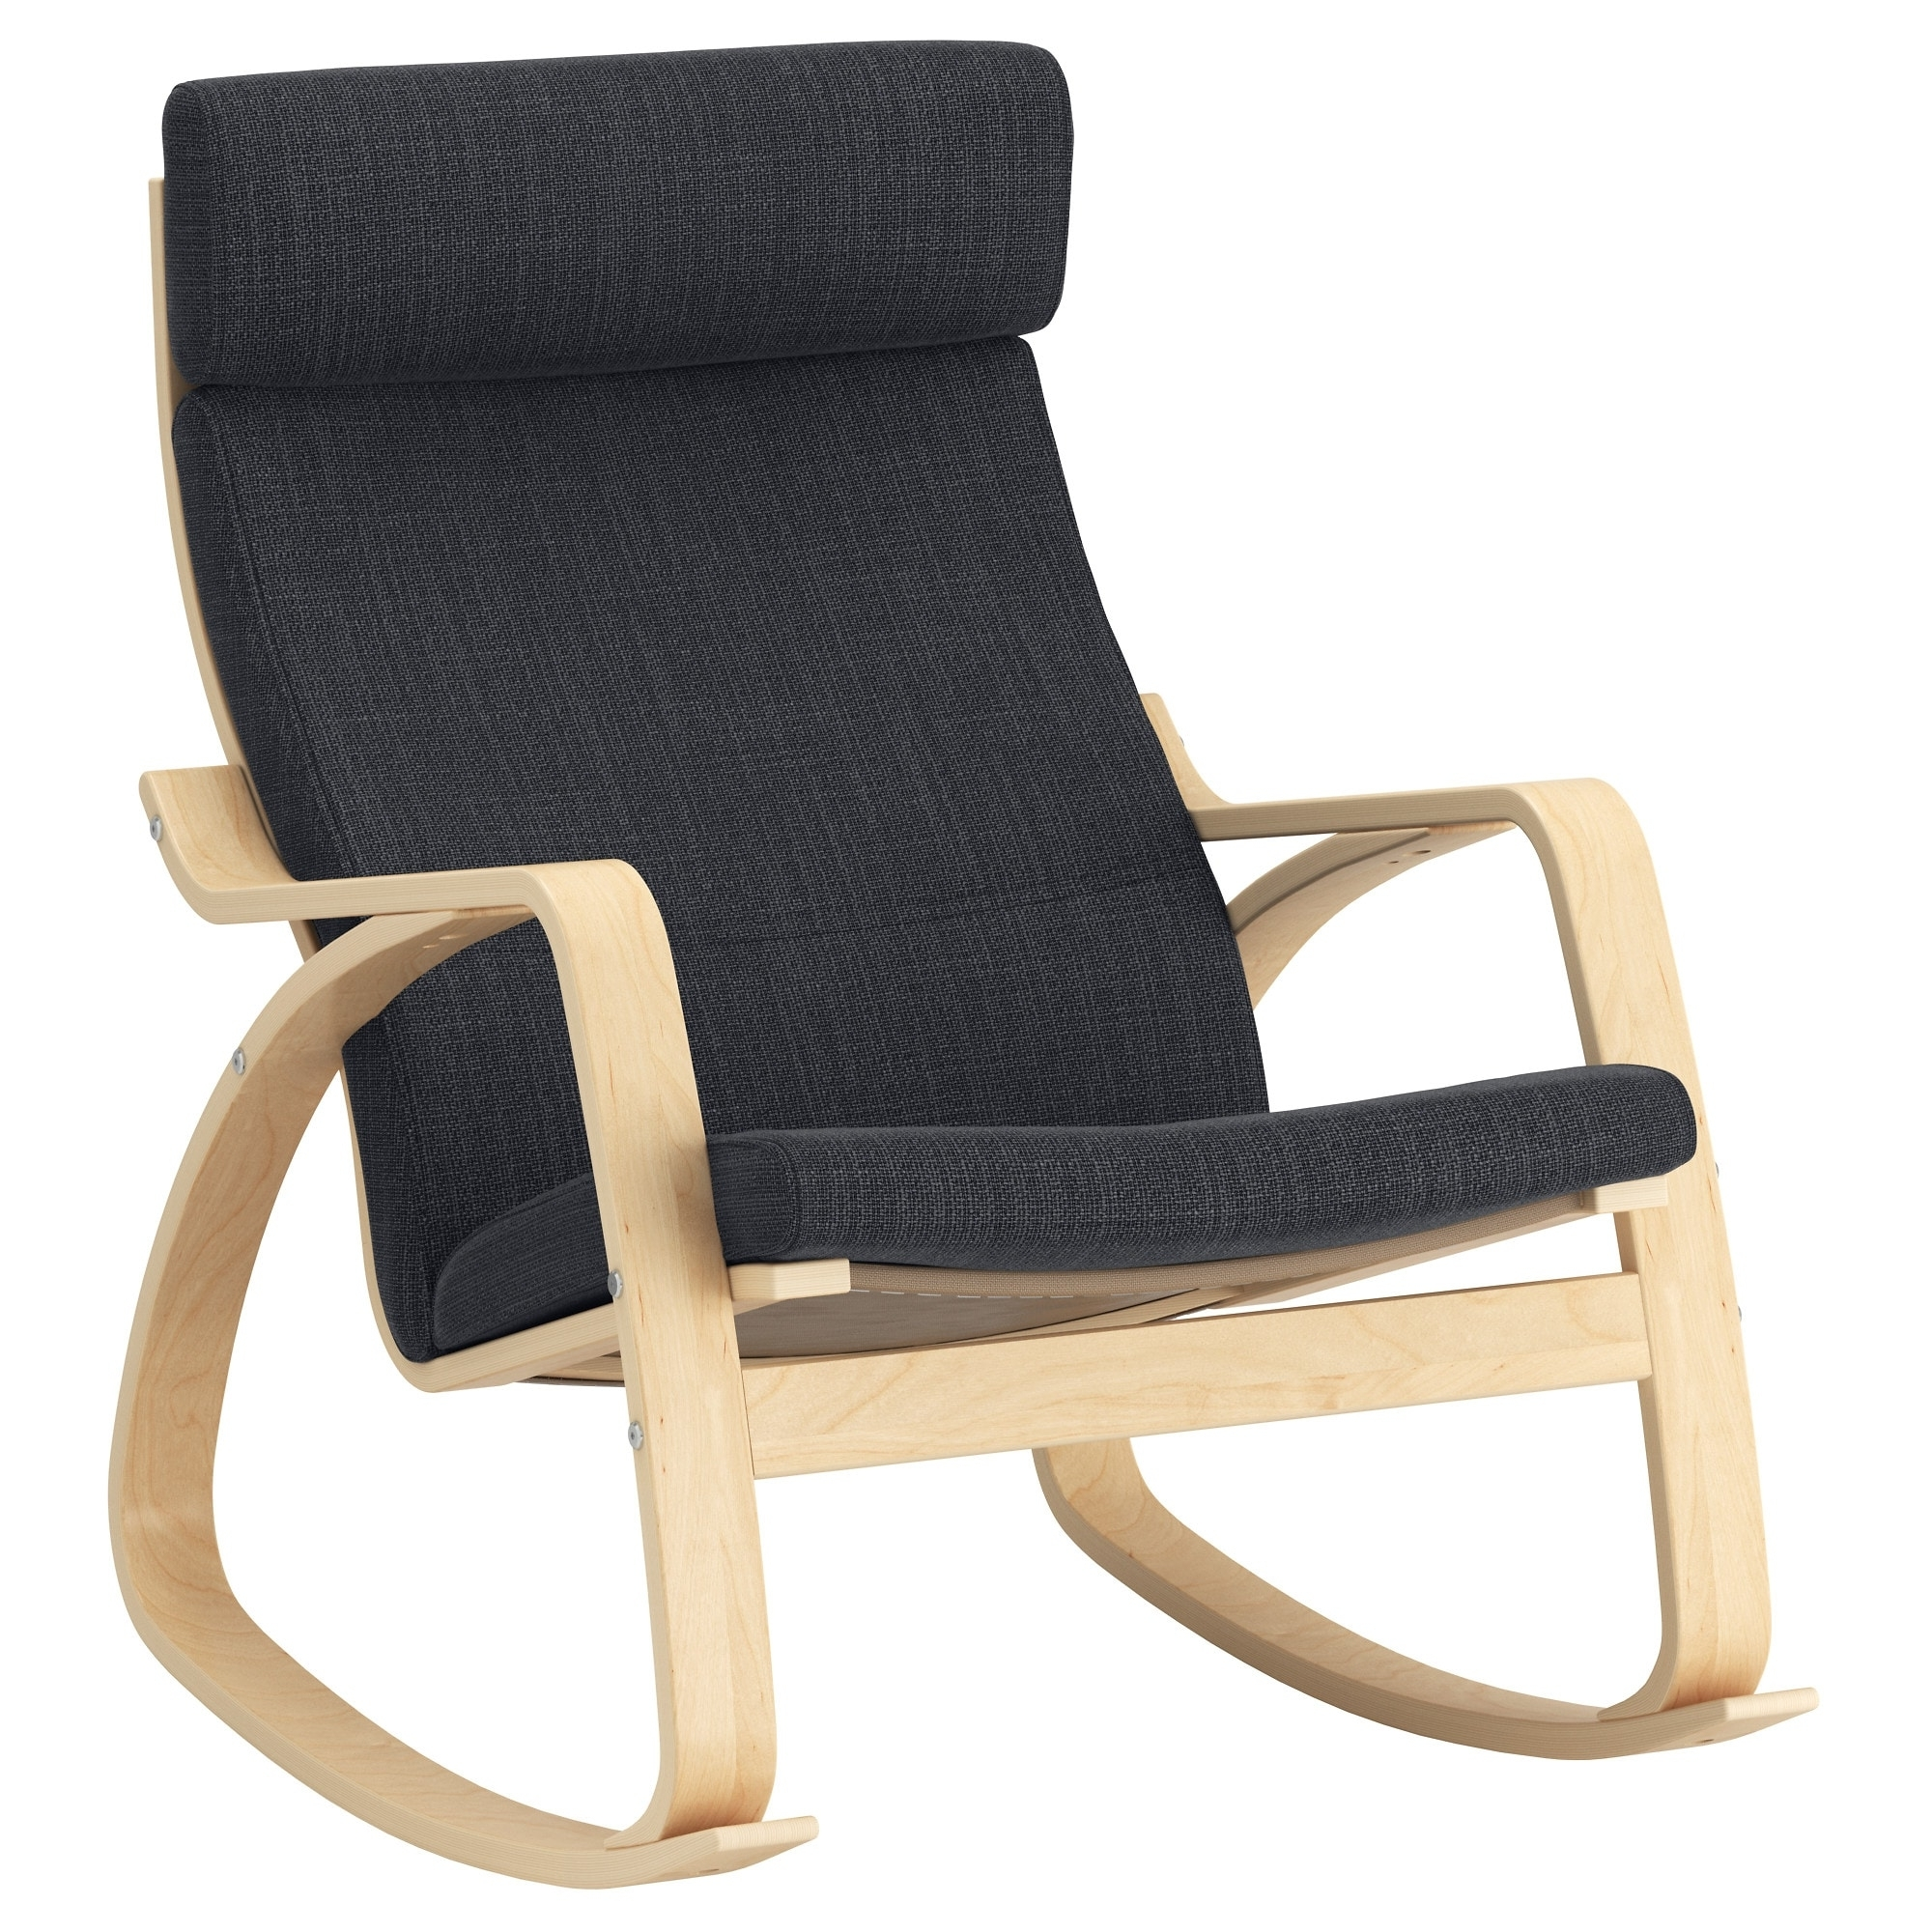 Favorite Rocking Chairs At Ikea Within Poäng Rocking Chair Birch Veneer/hillared Anthracite – Ikea (View 4 of 15)